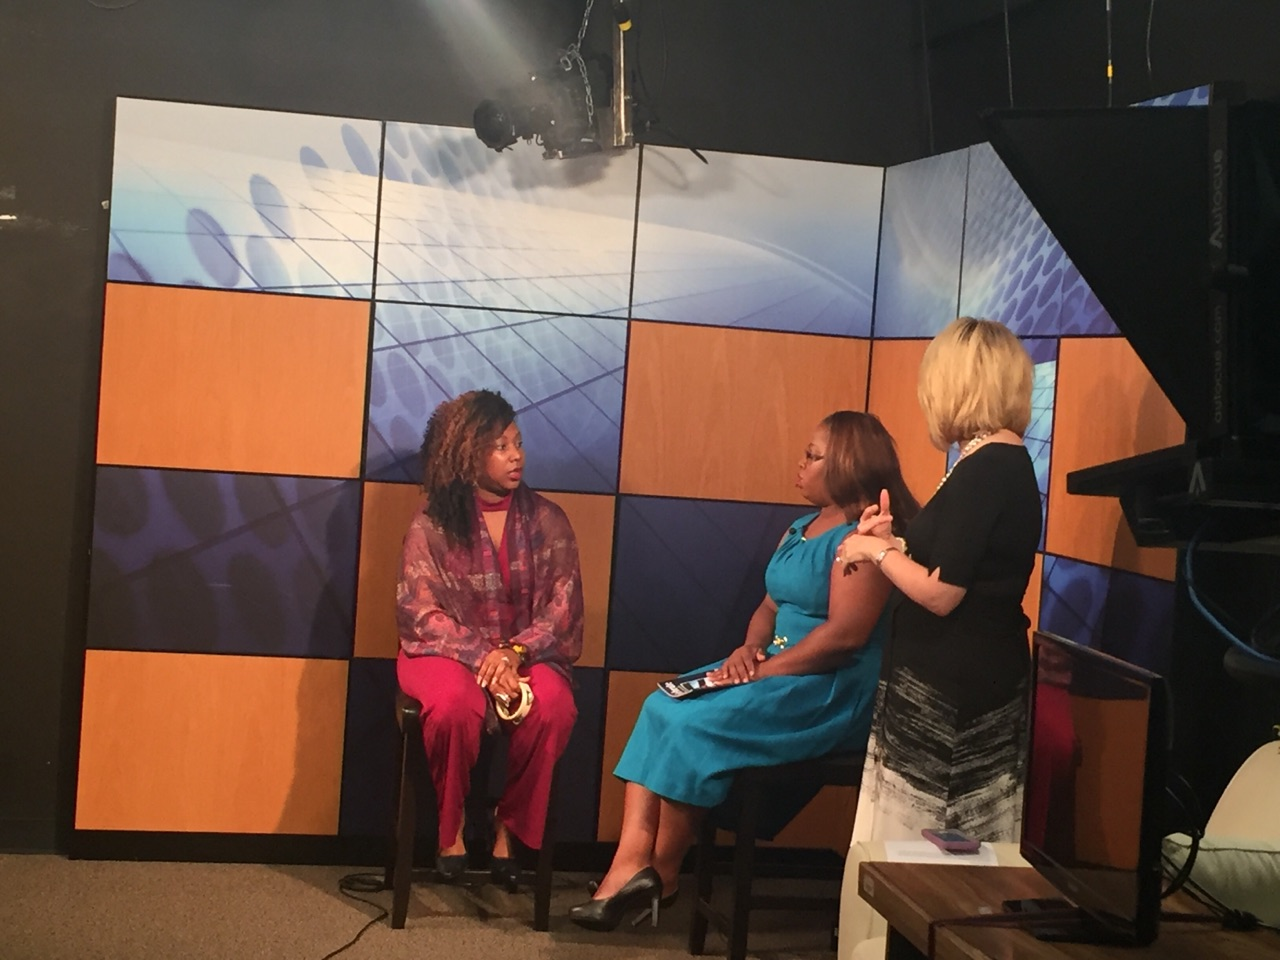 Author Interview with CN2 News